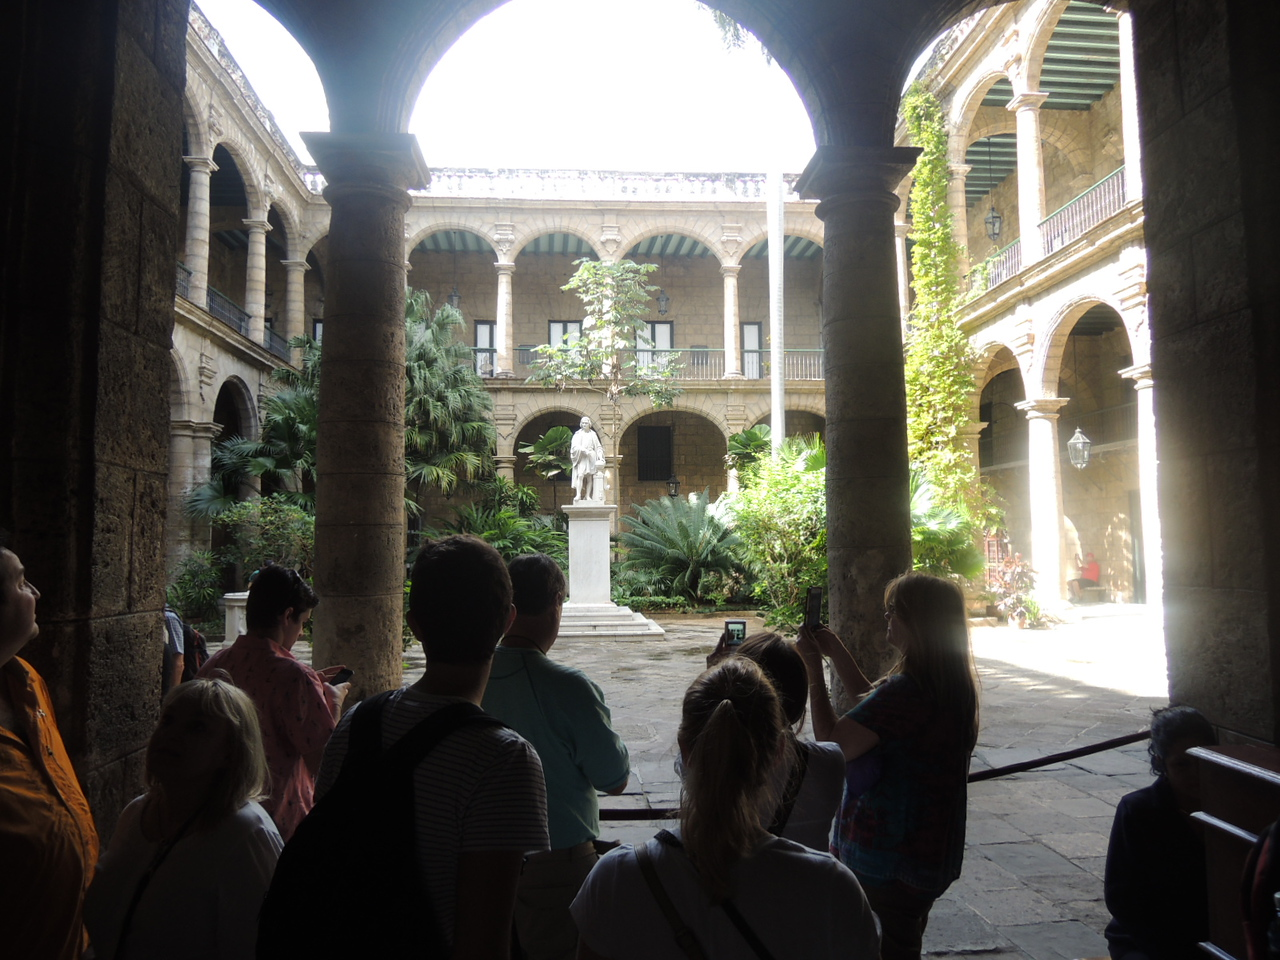 The inner courtyard of an old mansion.  Quite lovely!